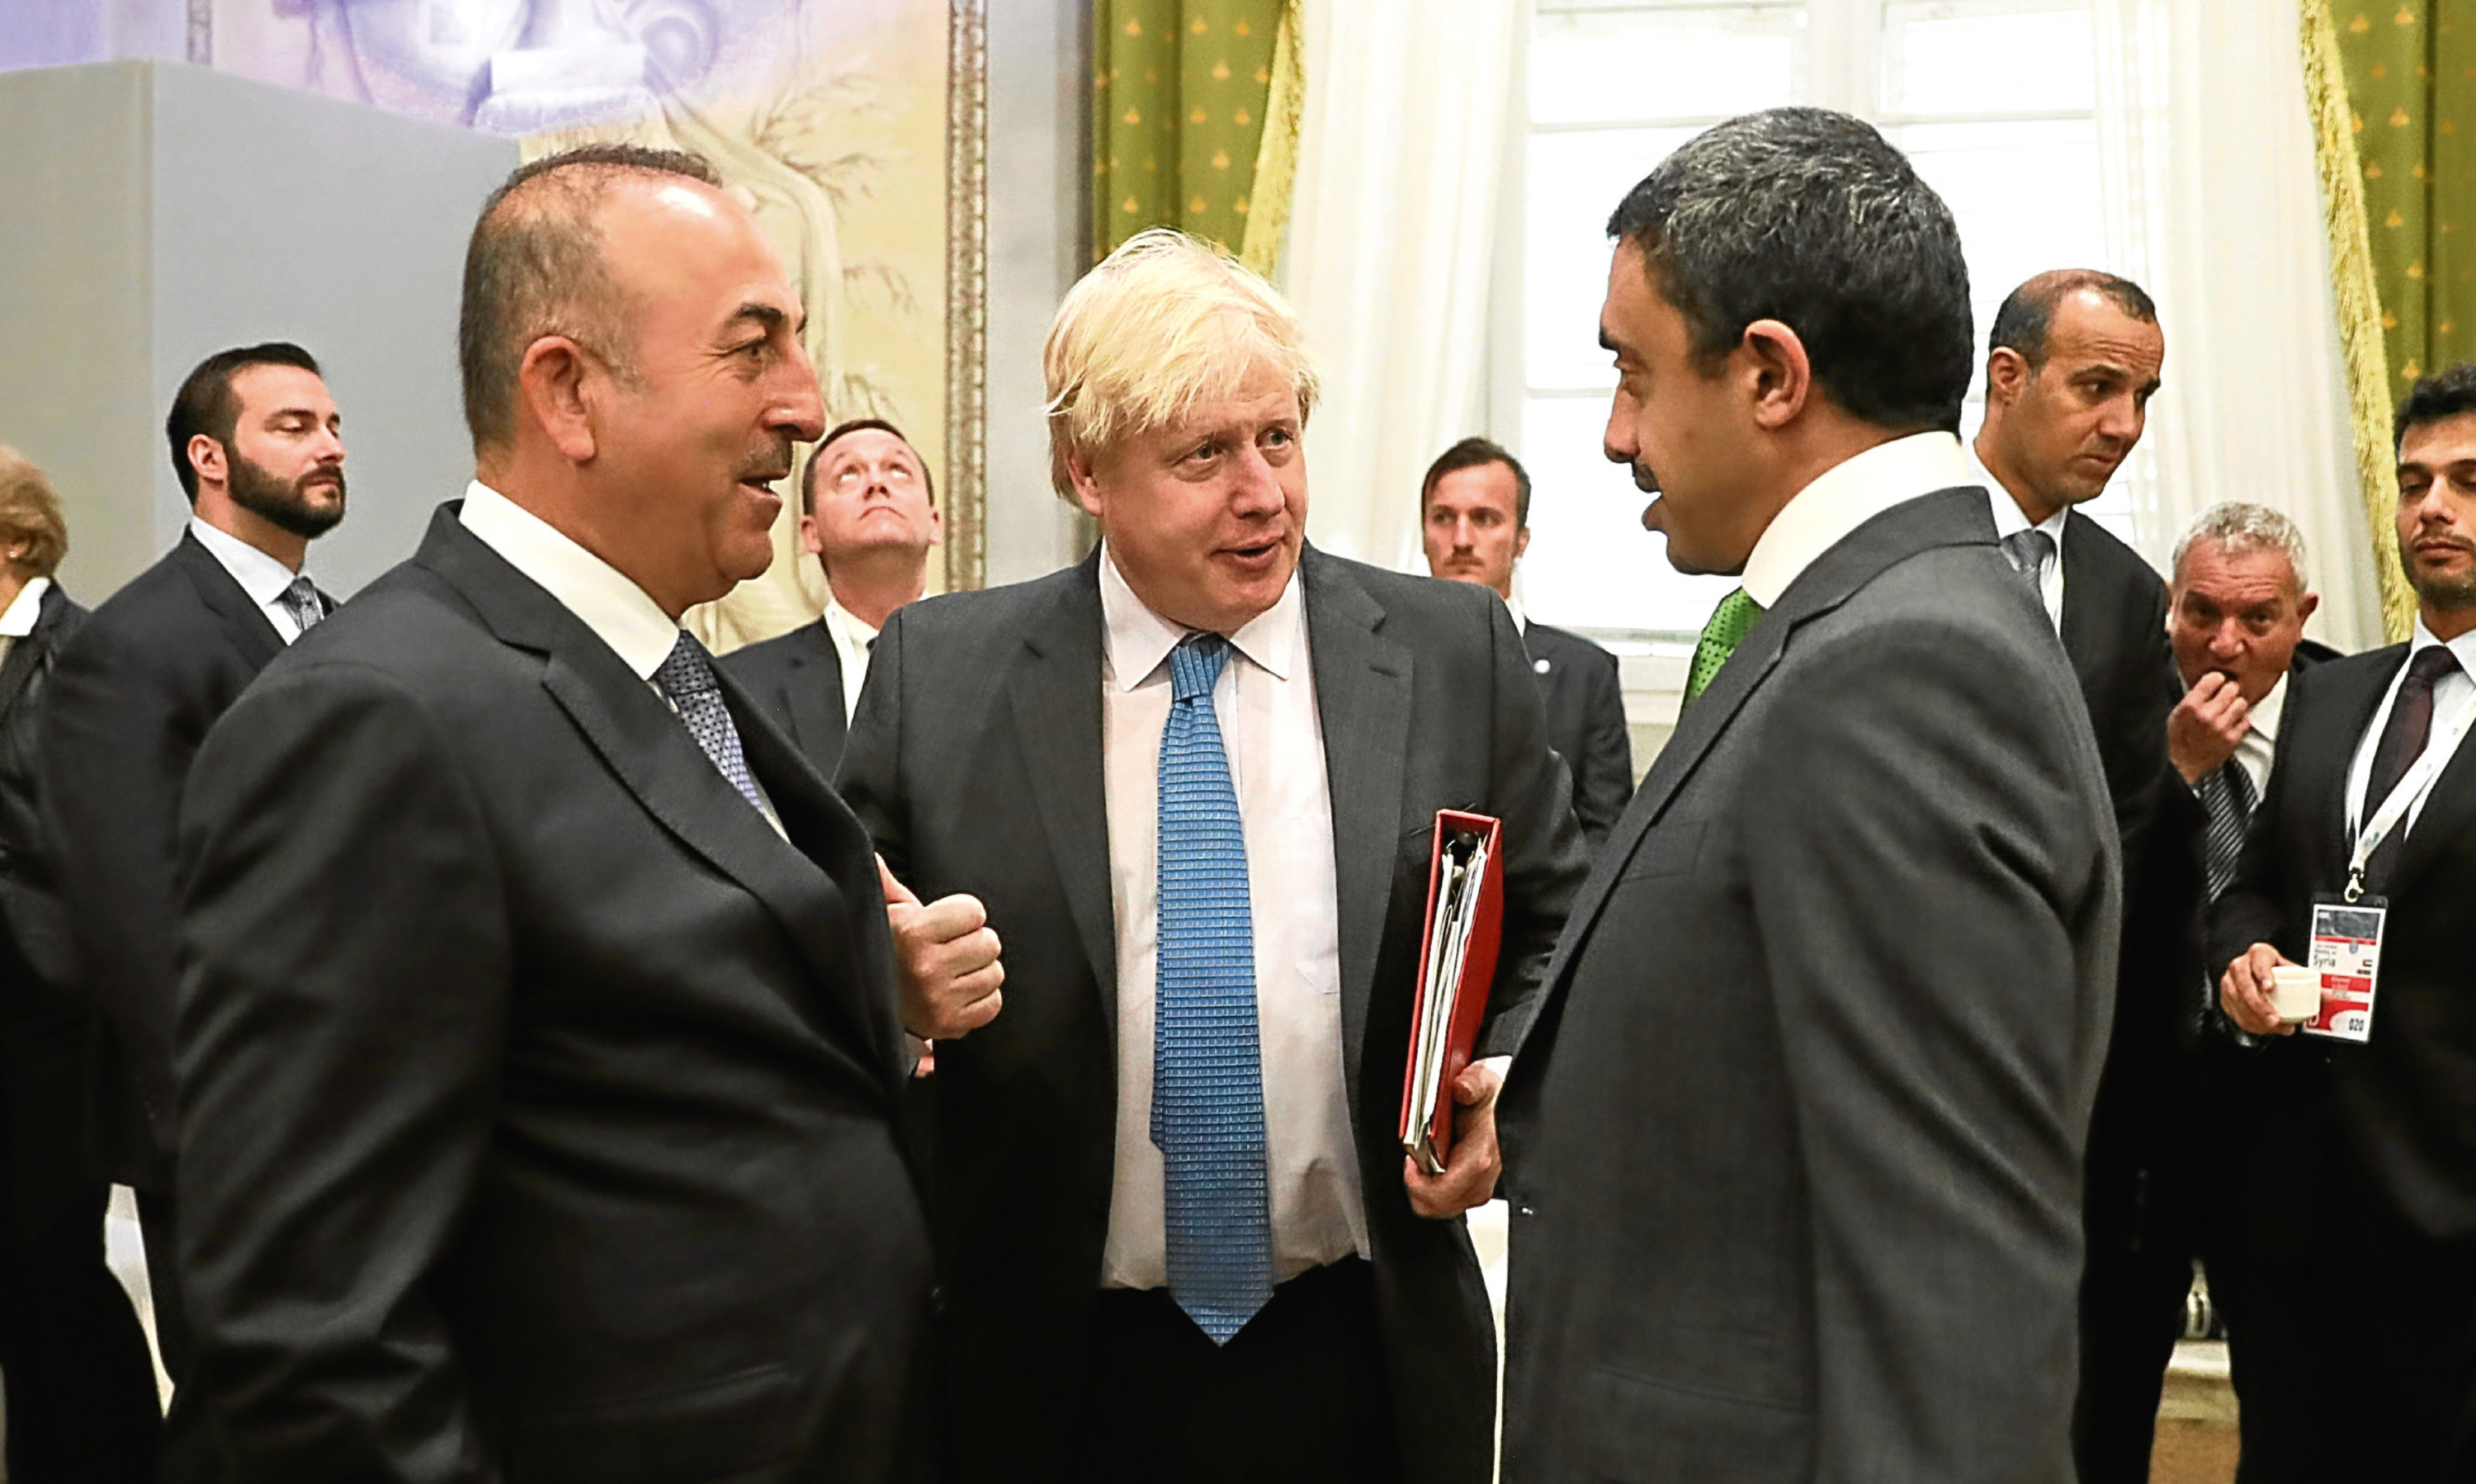 Boris Johnson, centre, at the G7 Ministers of Foreign Affairs meeting in Italy, where he failed to get agreement over sanctions for Russia.